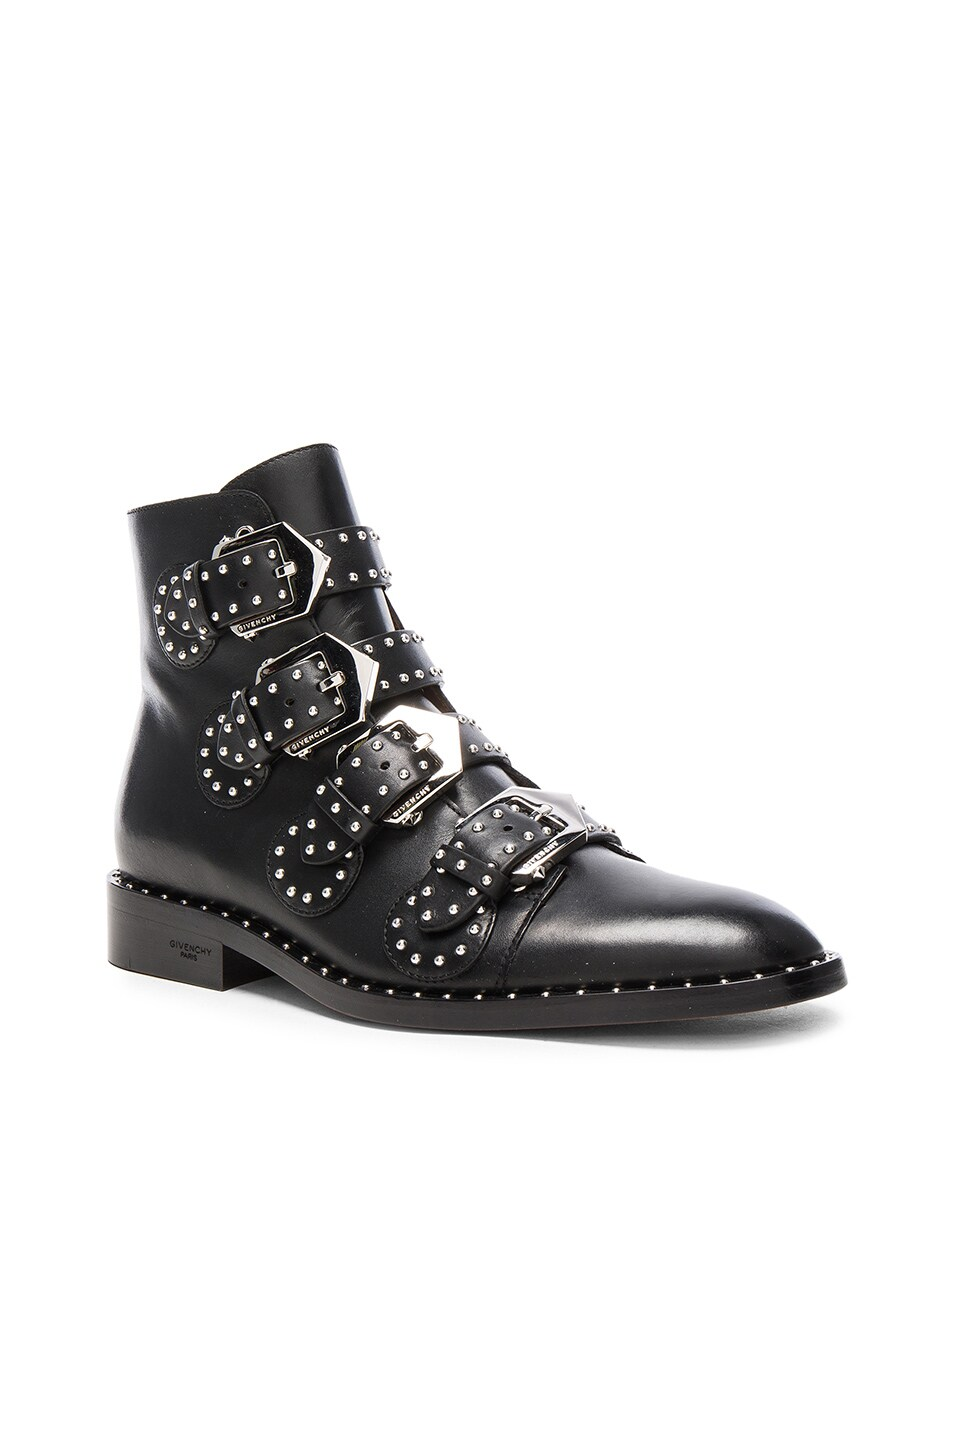 ec75737e8e8 Givenchy Elegant Studded Leather Ankle Boots in Black | FWRD